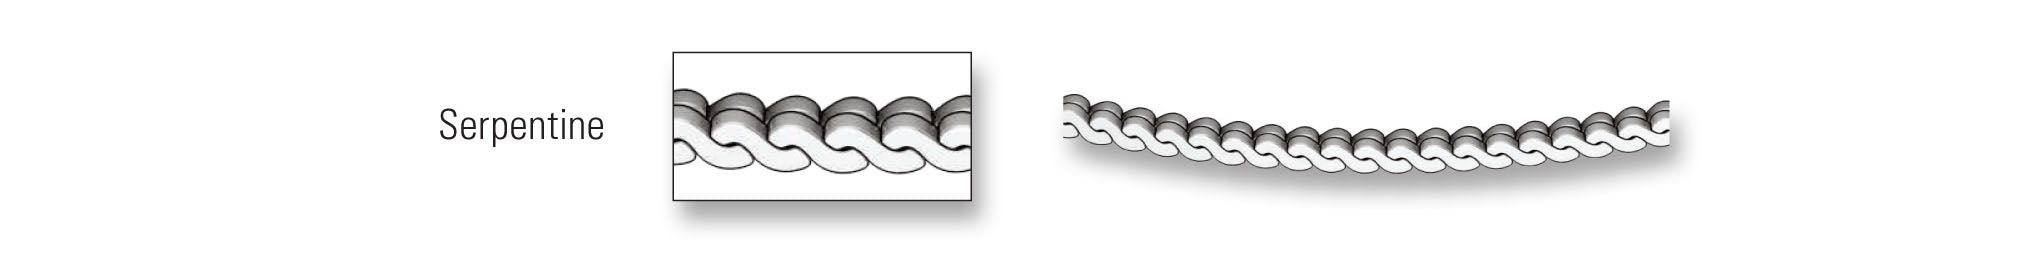 Chains - Serpentine Link Chain Image